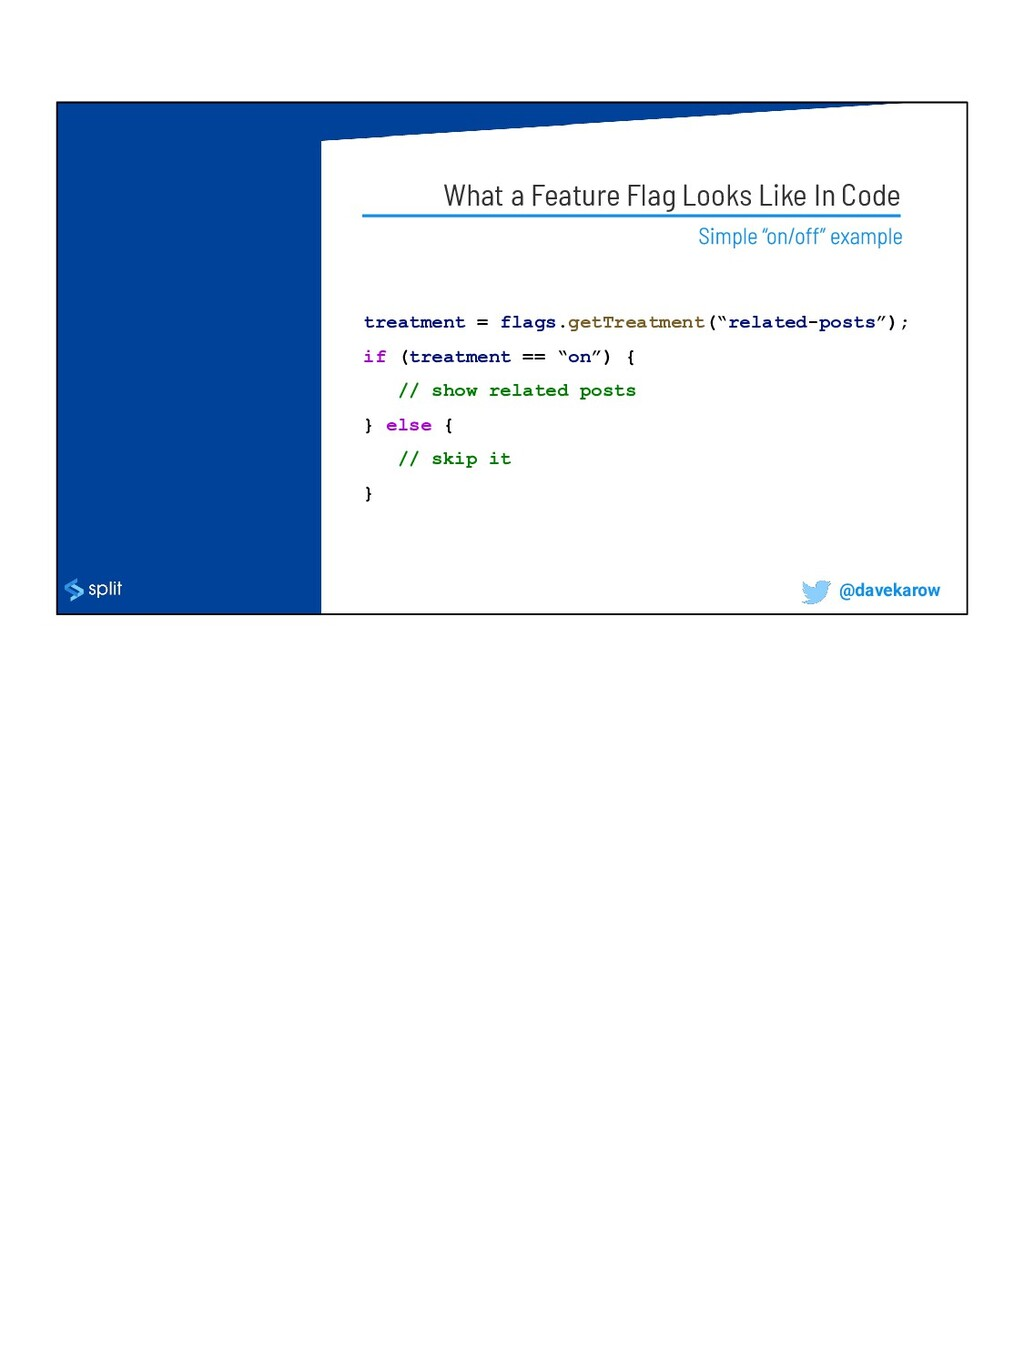 What a Feature Flag Looks Like In Code treatmen...